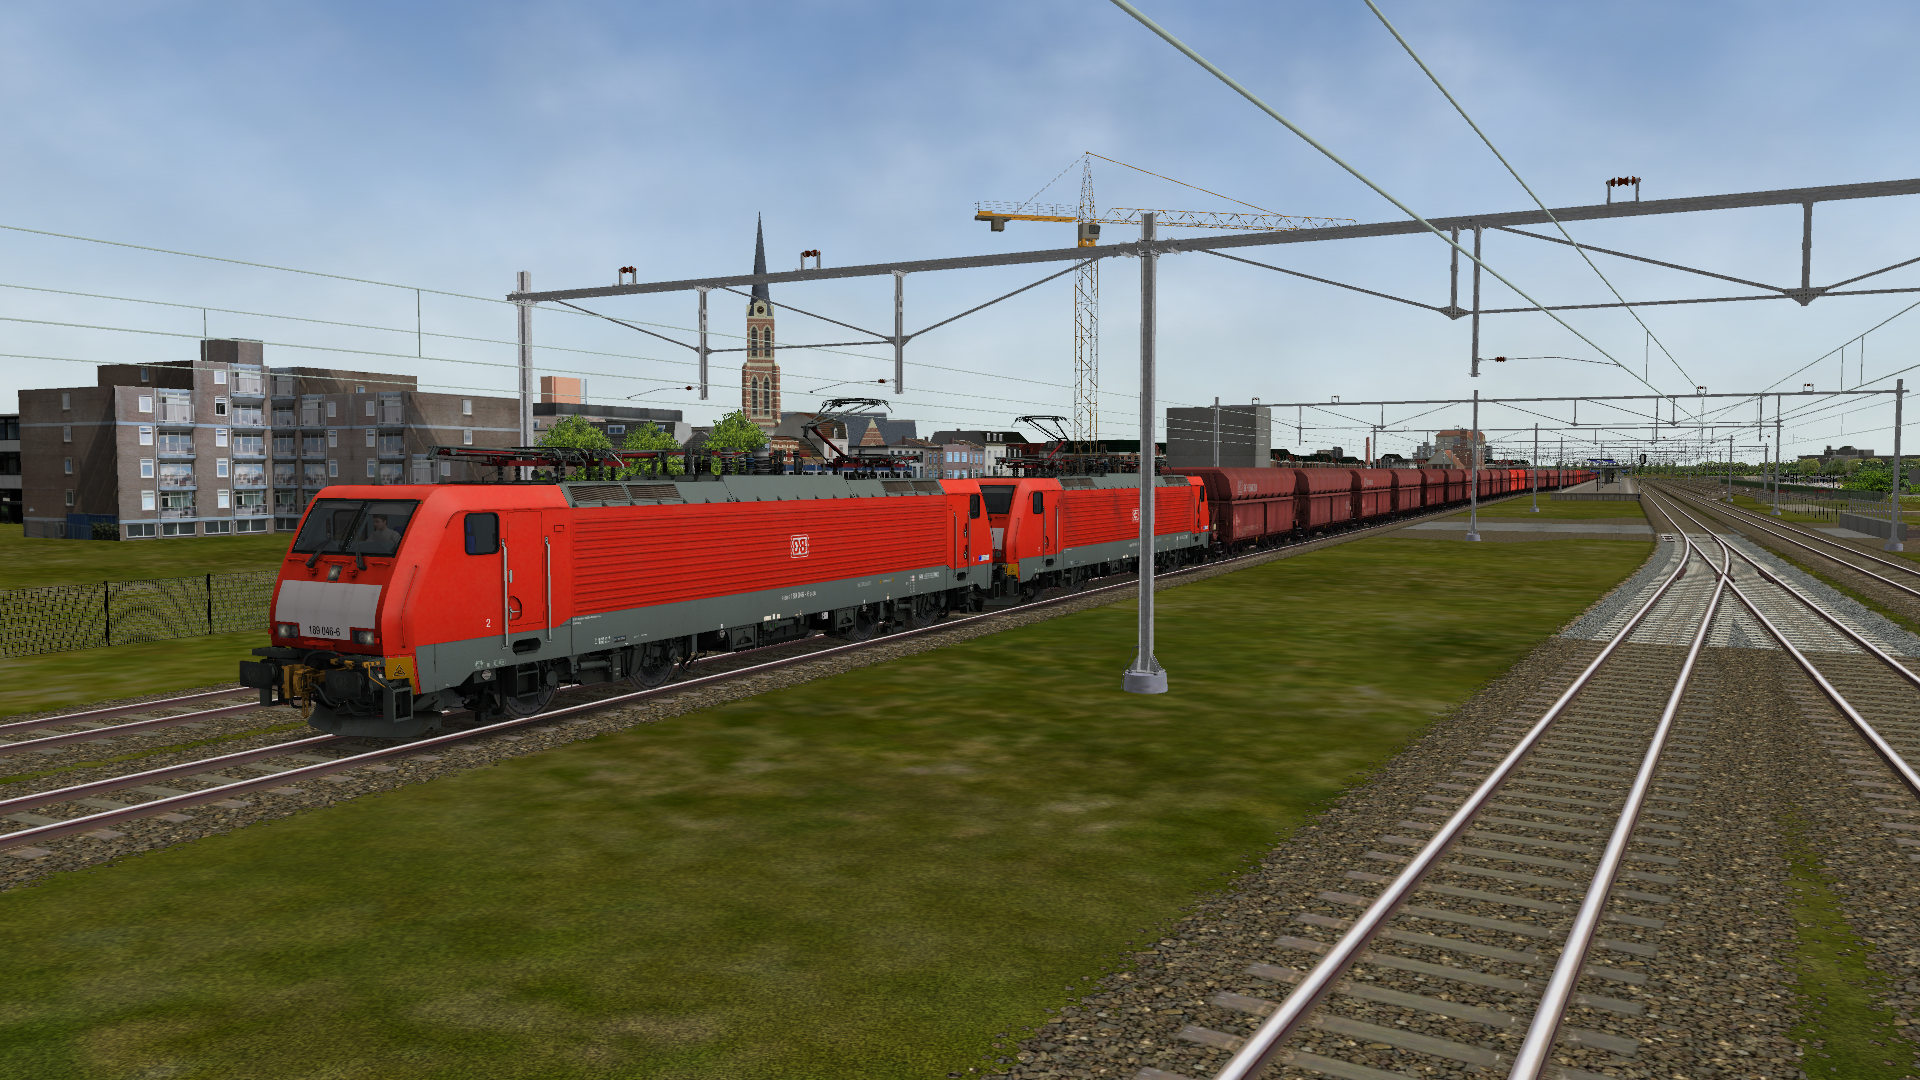 BR189 met ertstrein in Open Rails